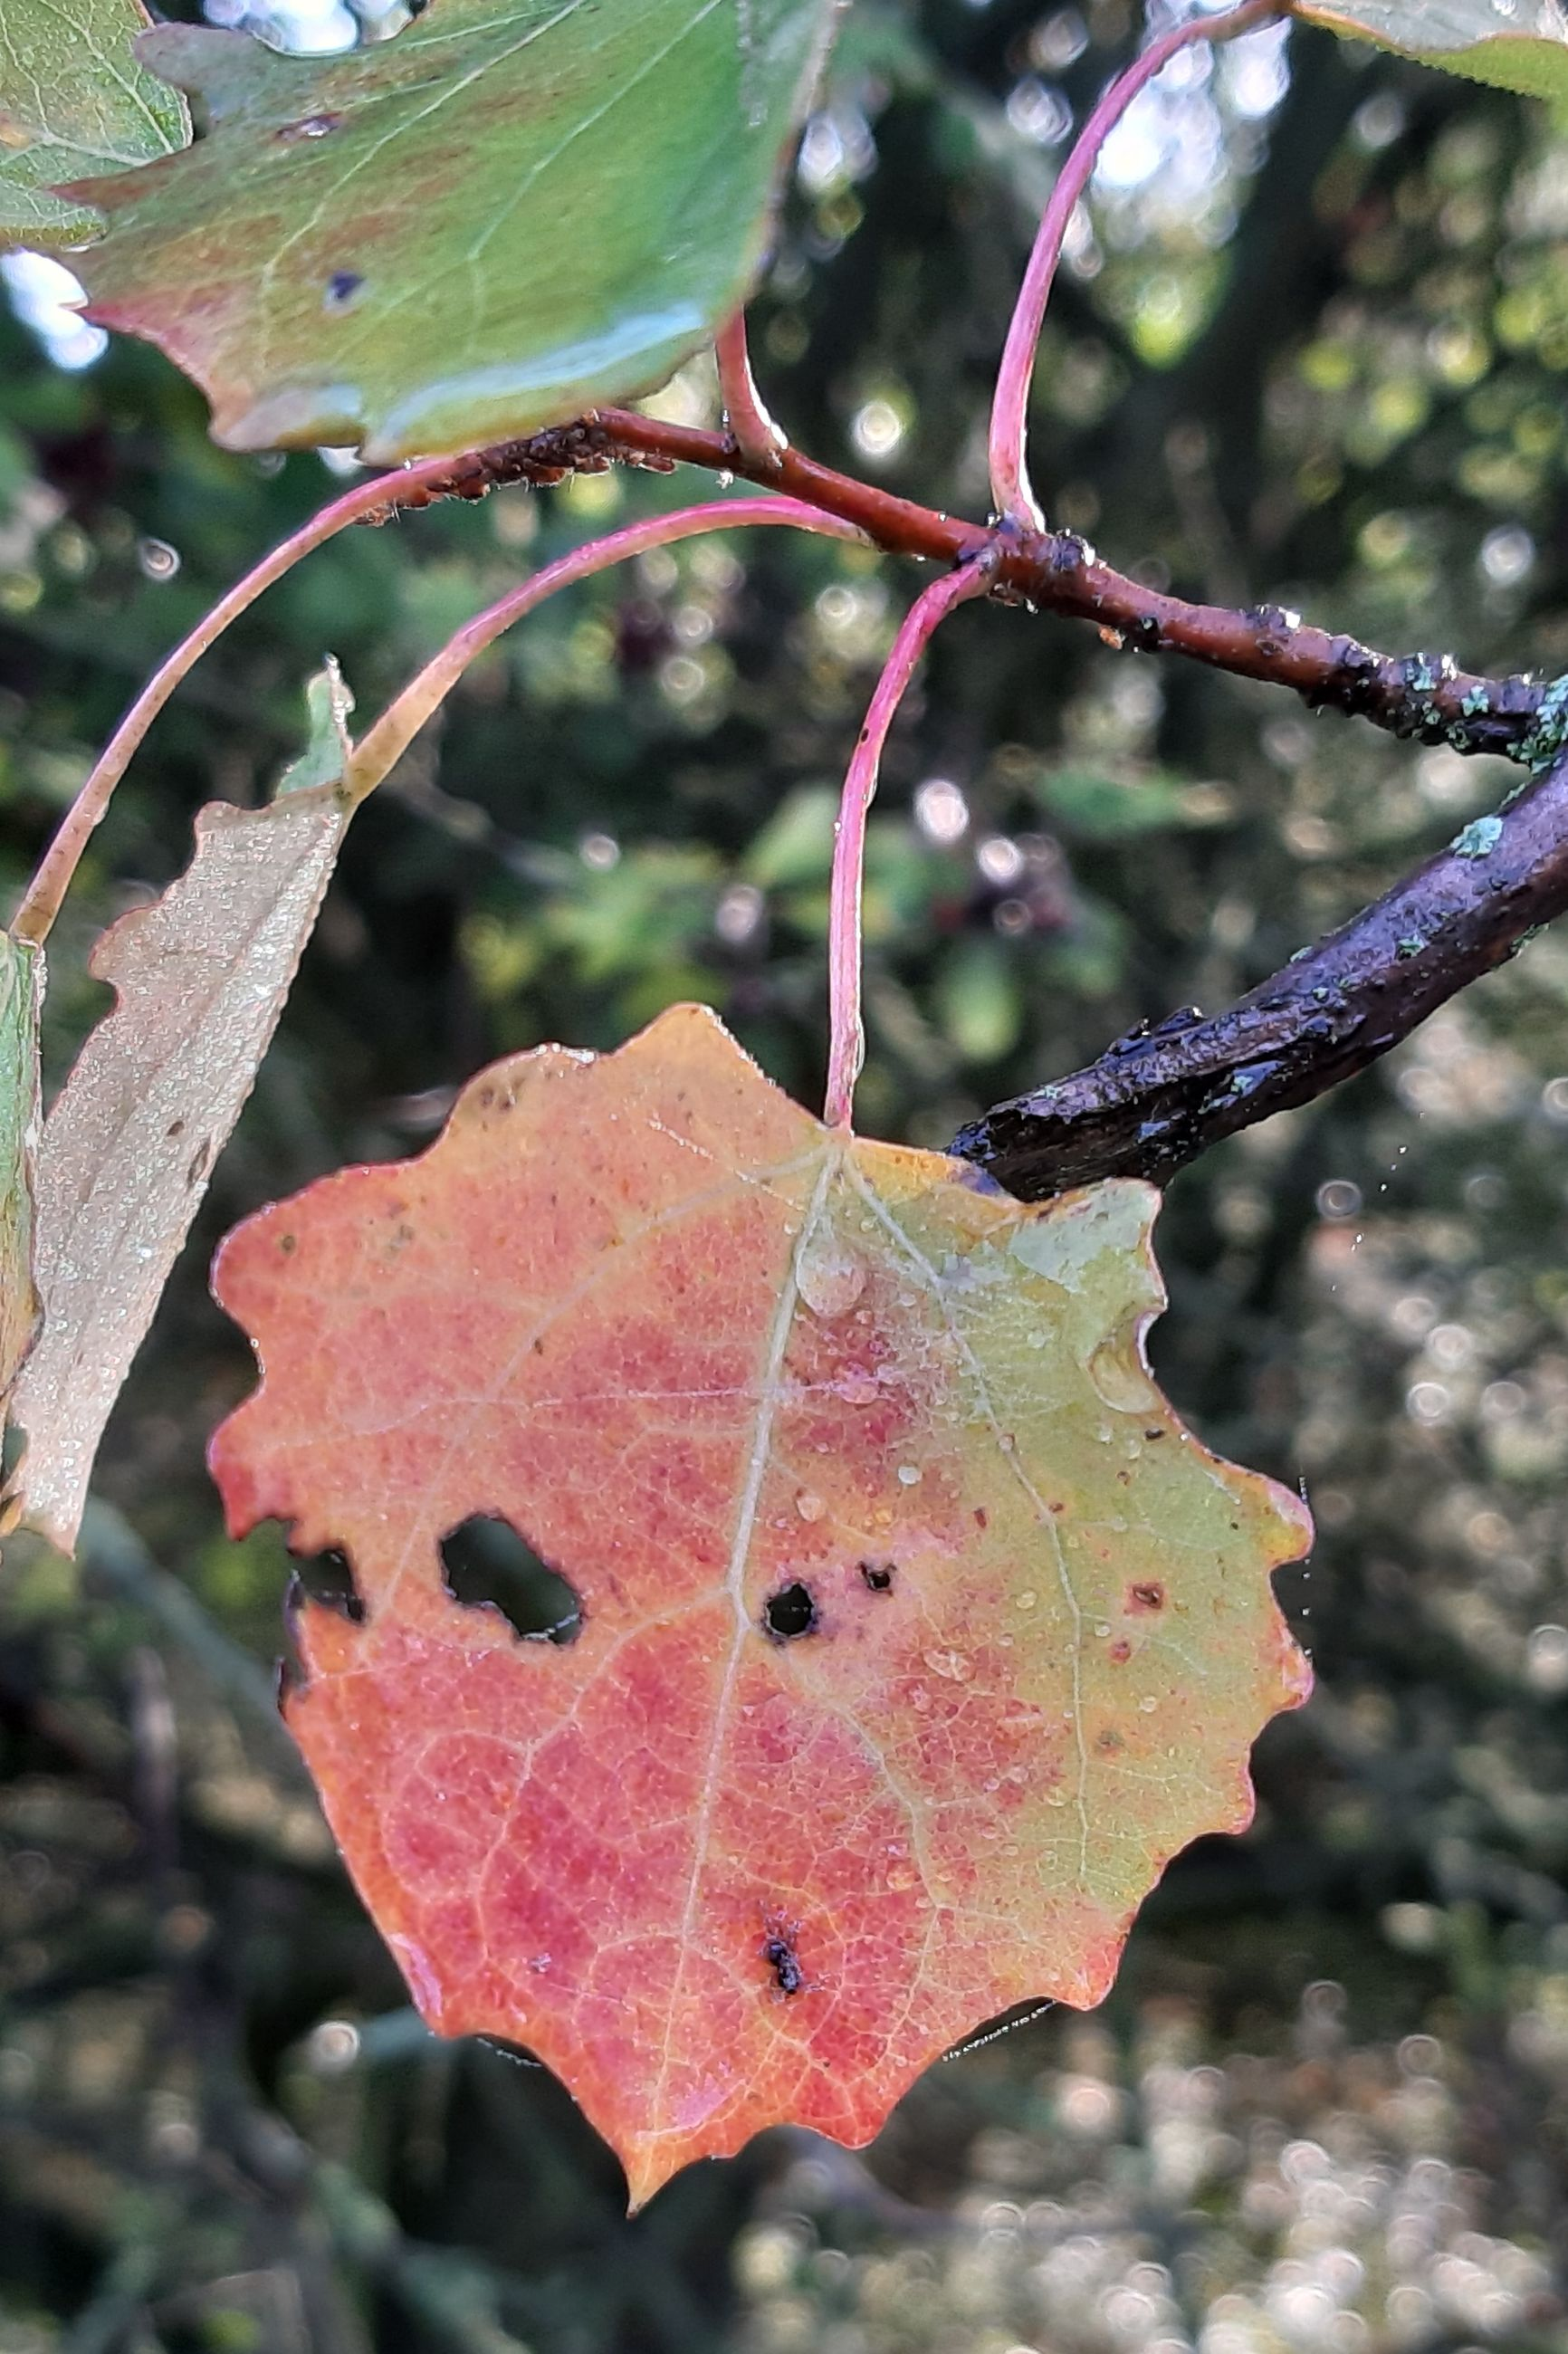 plant, close-up, focus on foreground, leaf, plant part, growth, day, nature, no people, autumn, tree, beauty in nature, change, red, pink color, outdoors, leaf vein, wet, vulnerability, fragility, maple leaf, raindrop